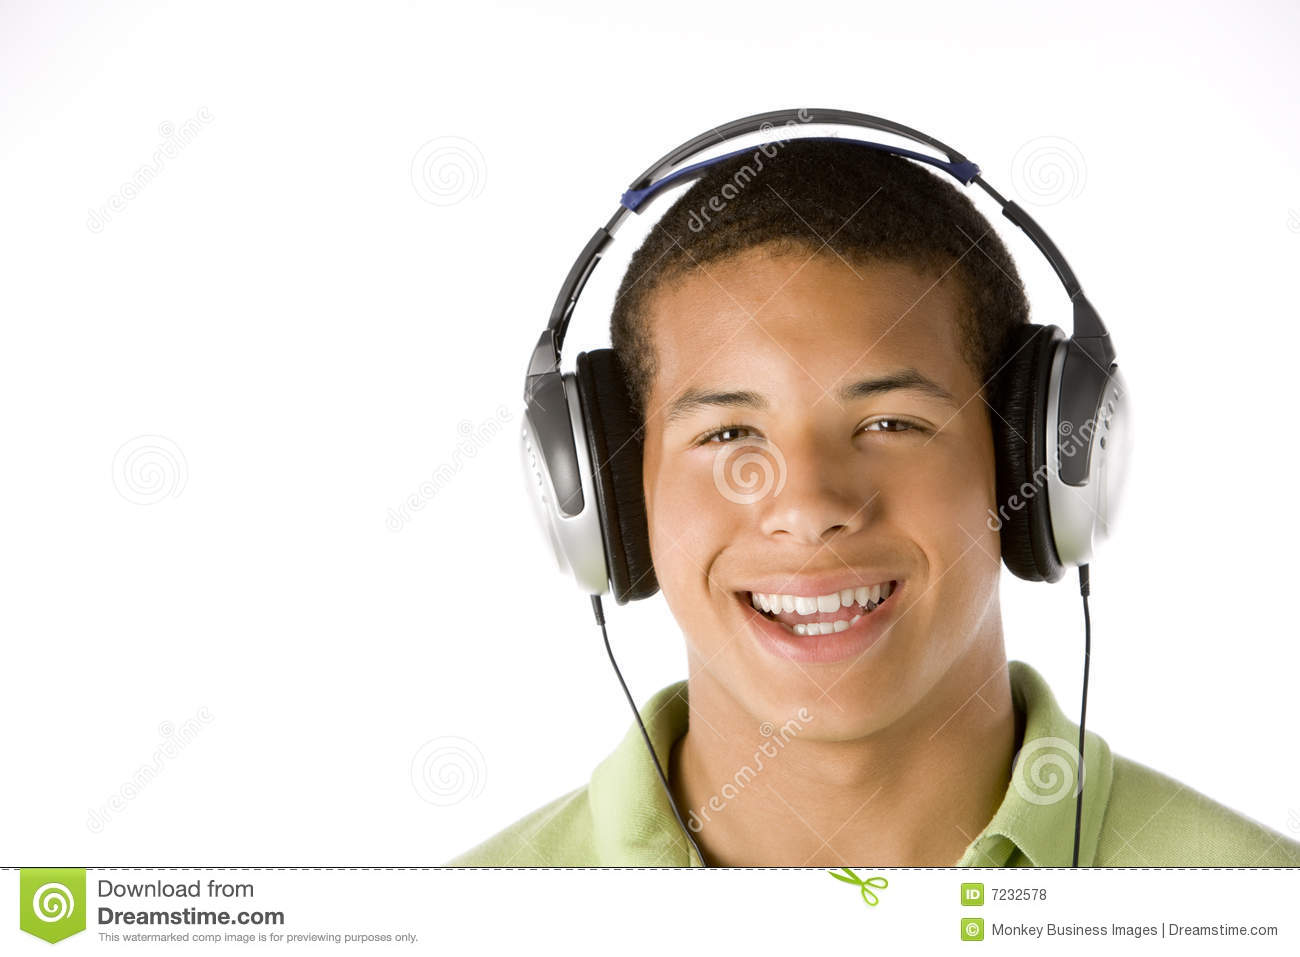 teenage-boy-listening-to-music-headphones-7232578.jpg